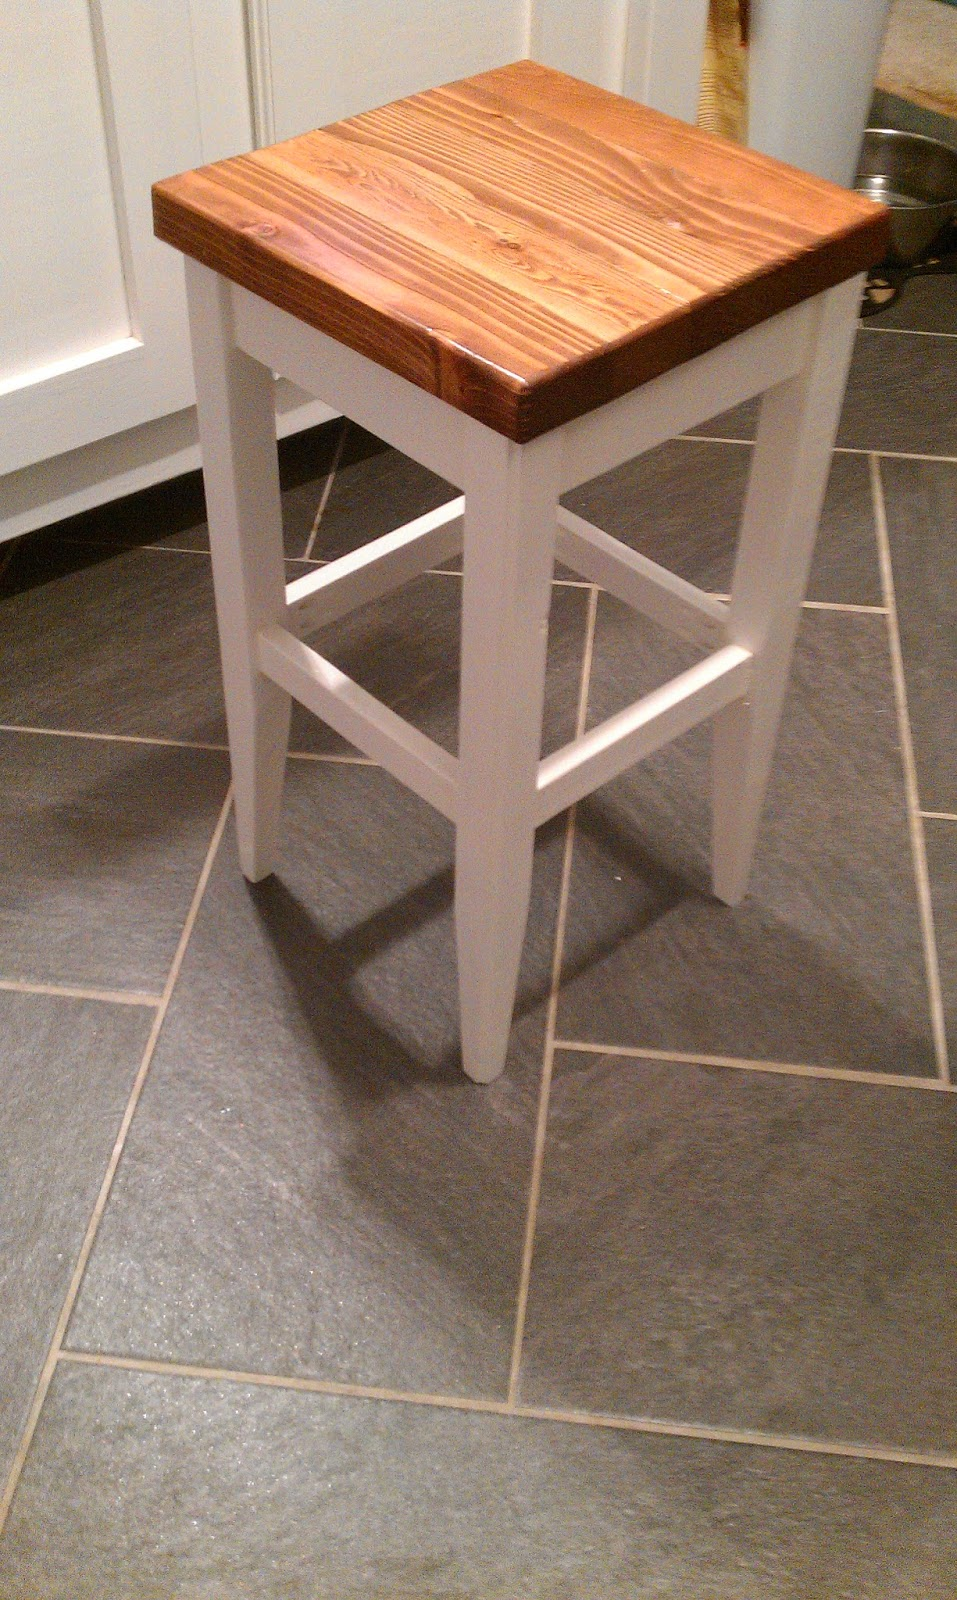 My Latest Project Is My DIY Kitchen Bar Stools